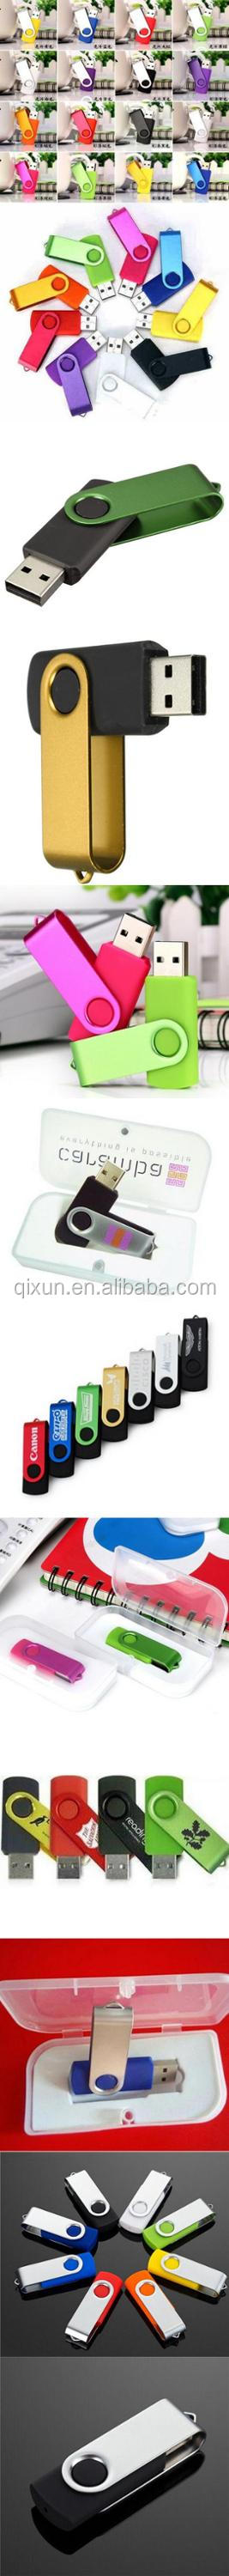 plastic 128mb usb flash drive bulk cheap assurance order paypal accept